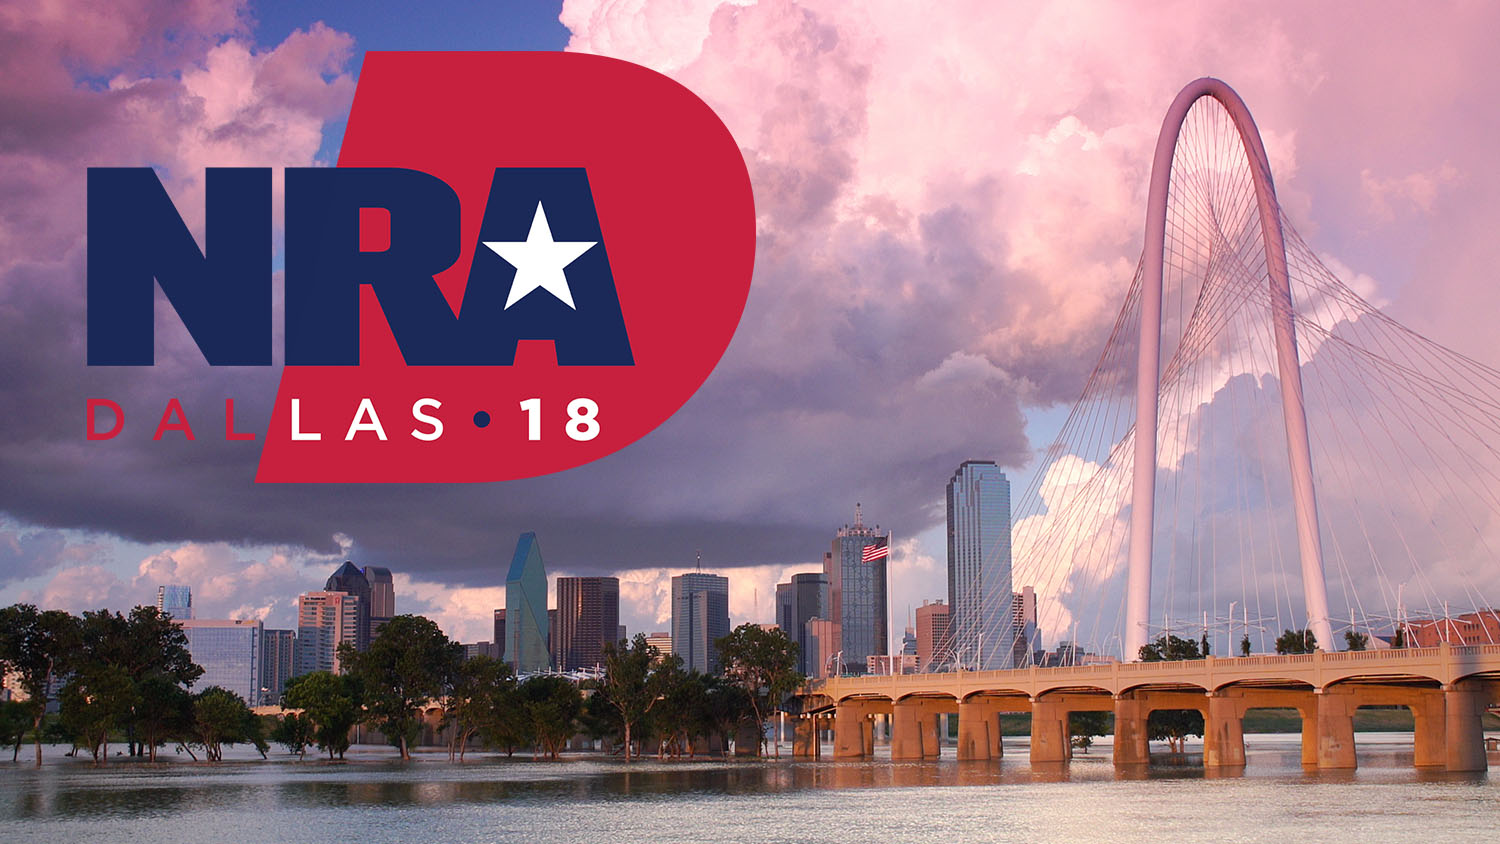 NRA Annual Meeting Events: Saturday, May 5